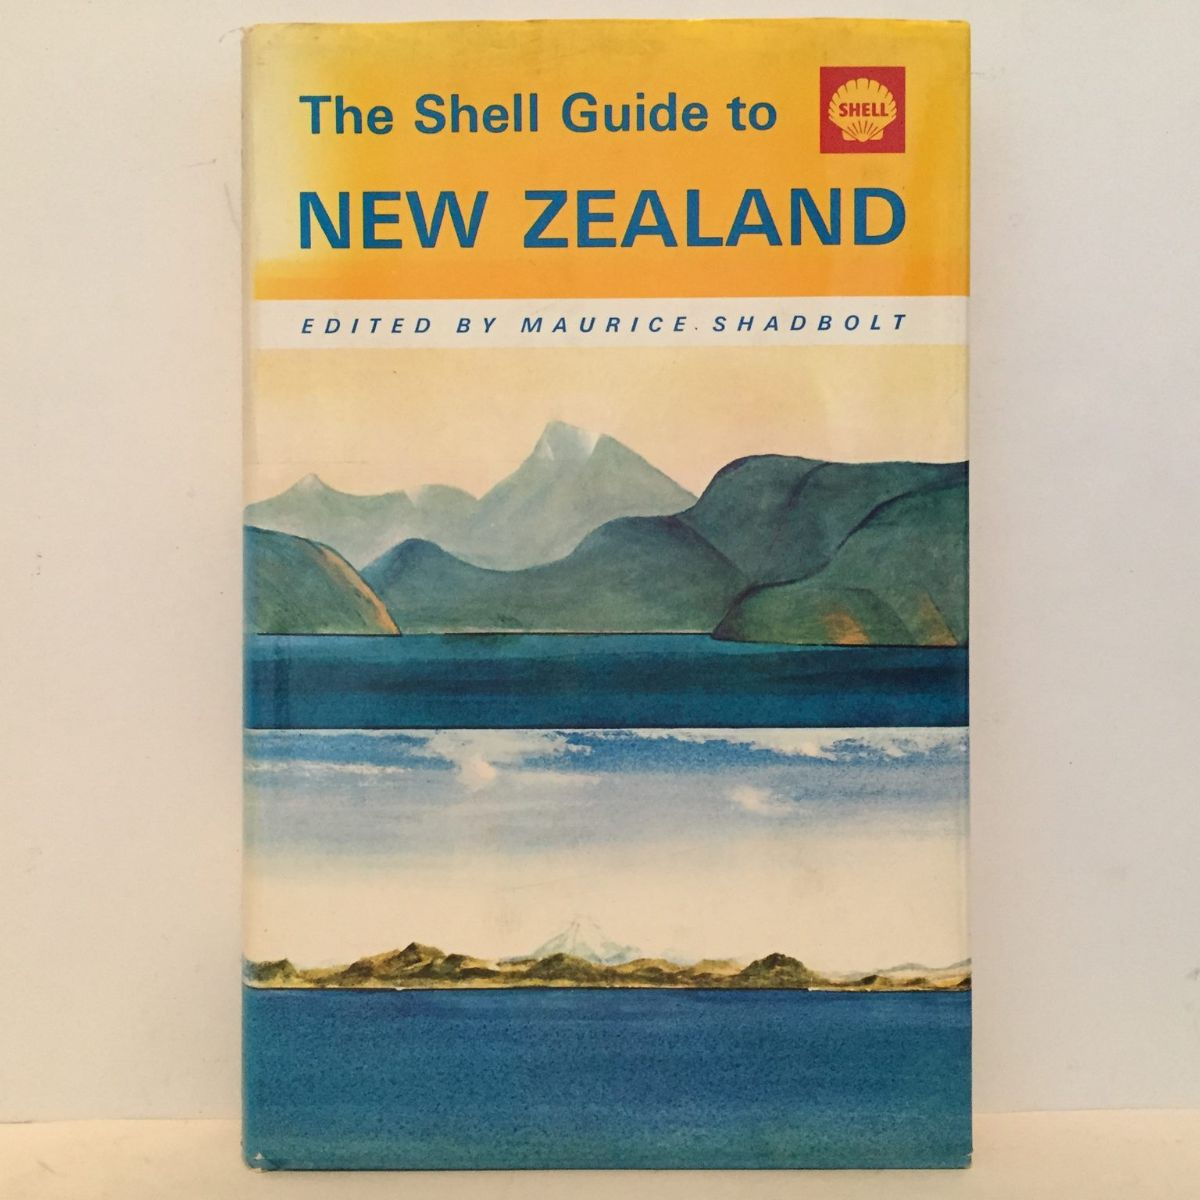 The Shell Guide to New Zealand